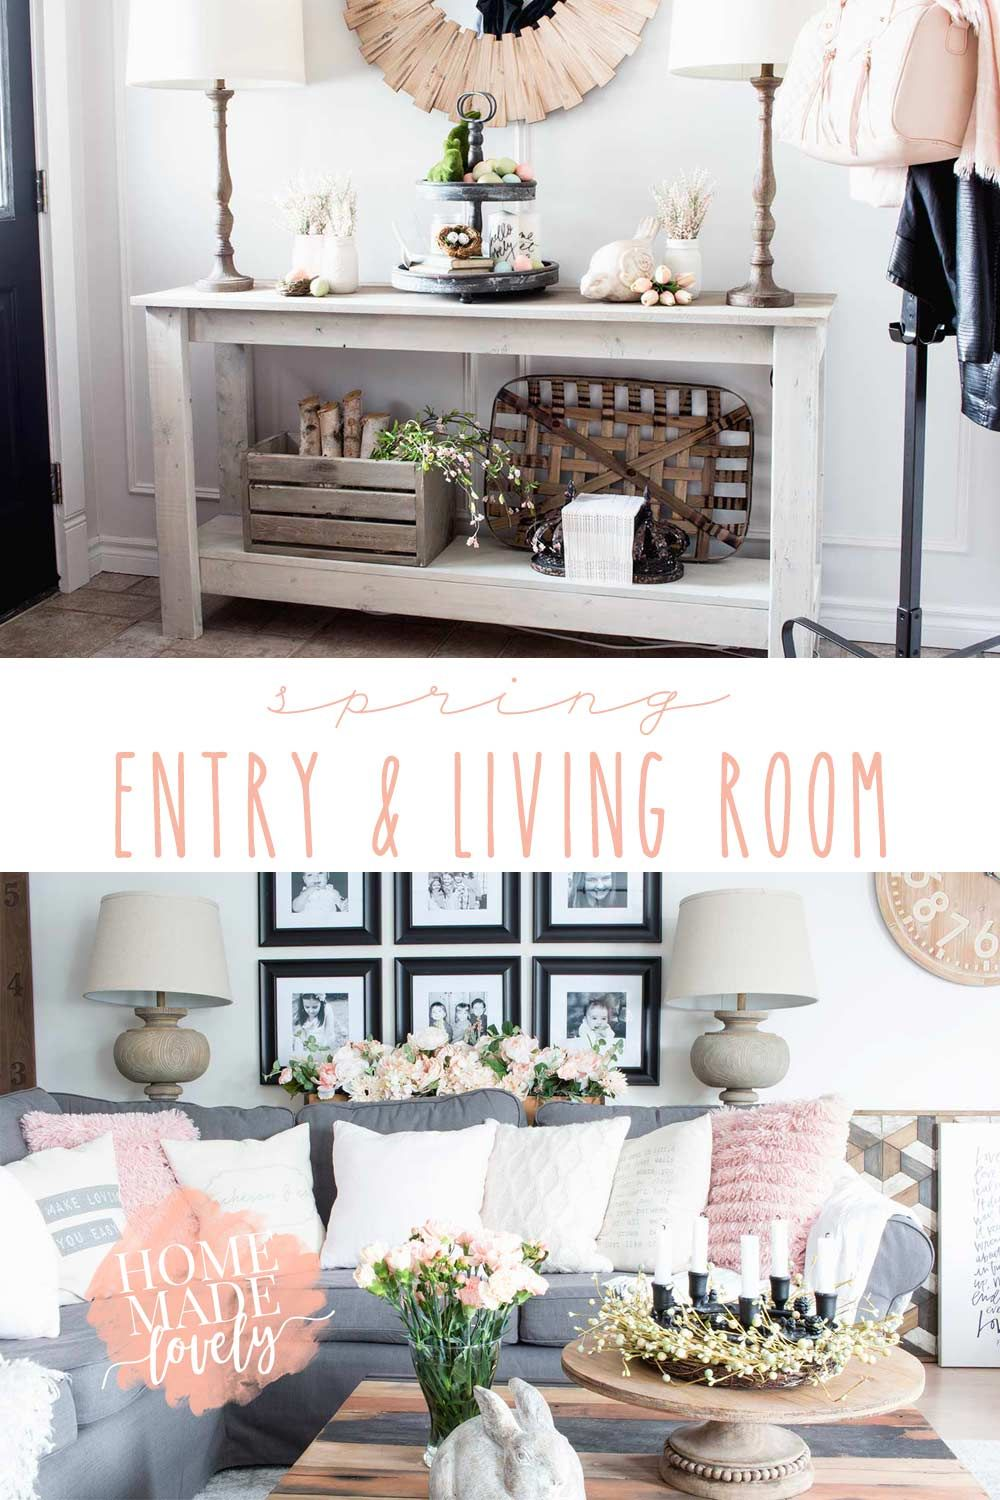 Our Spring Entry and Living Room Canadian Bloggers Home